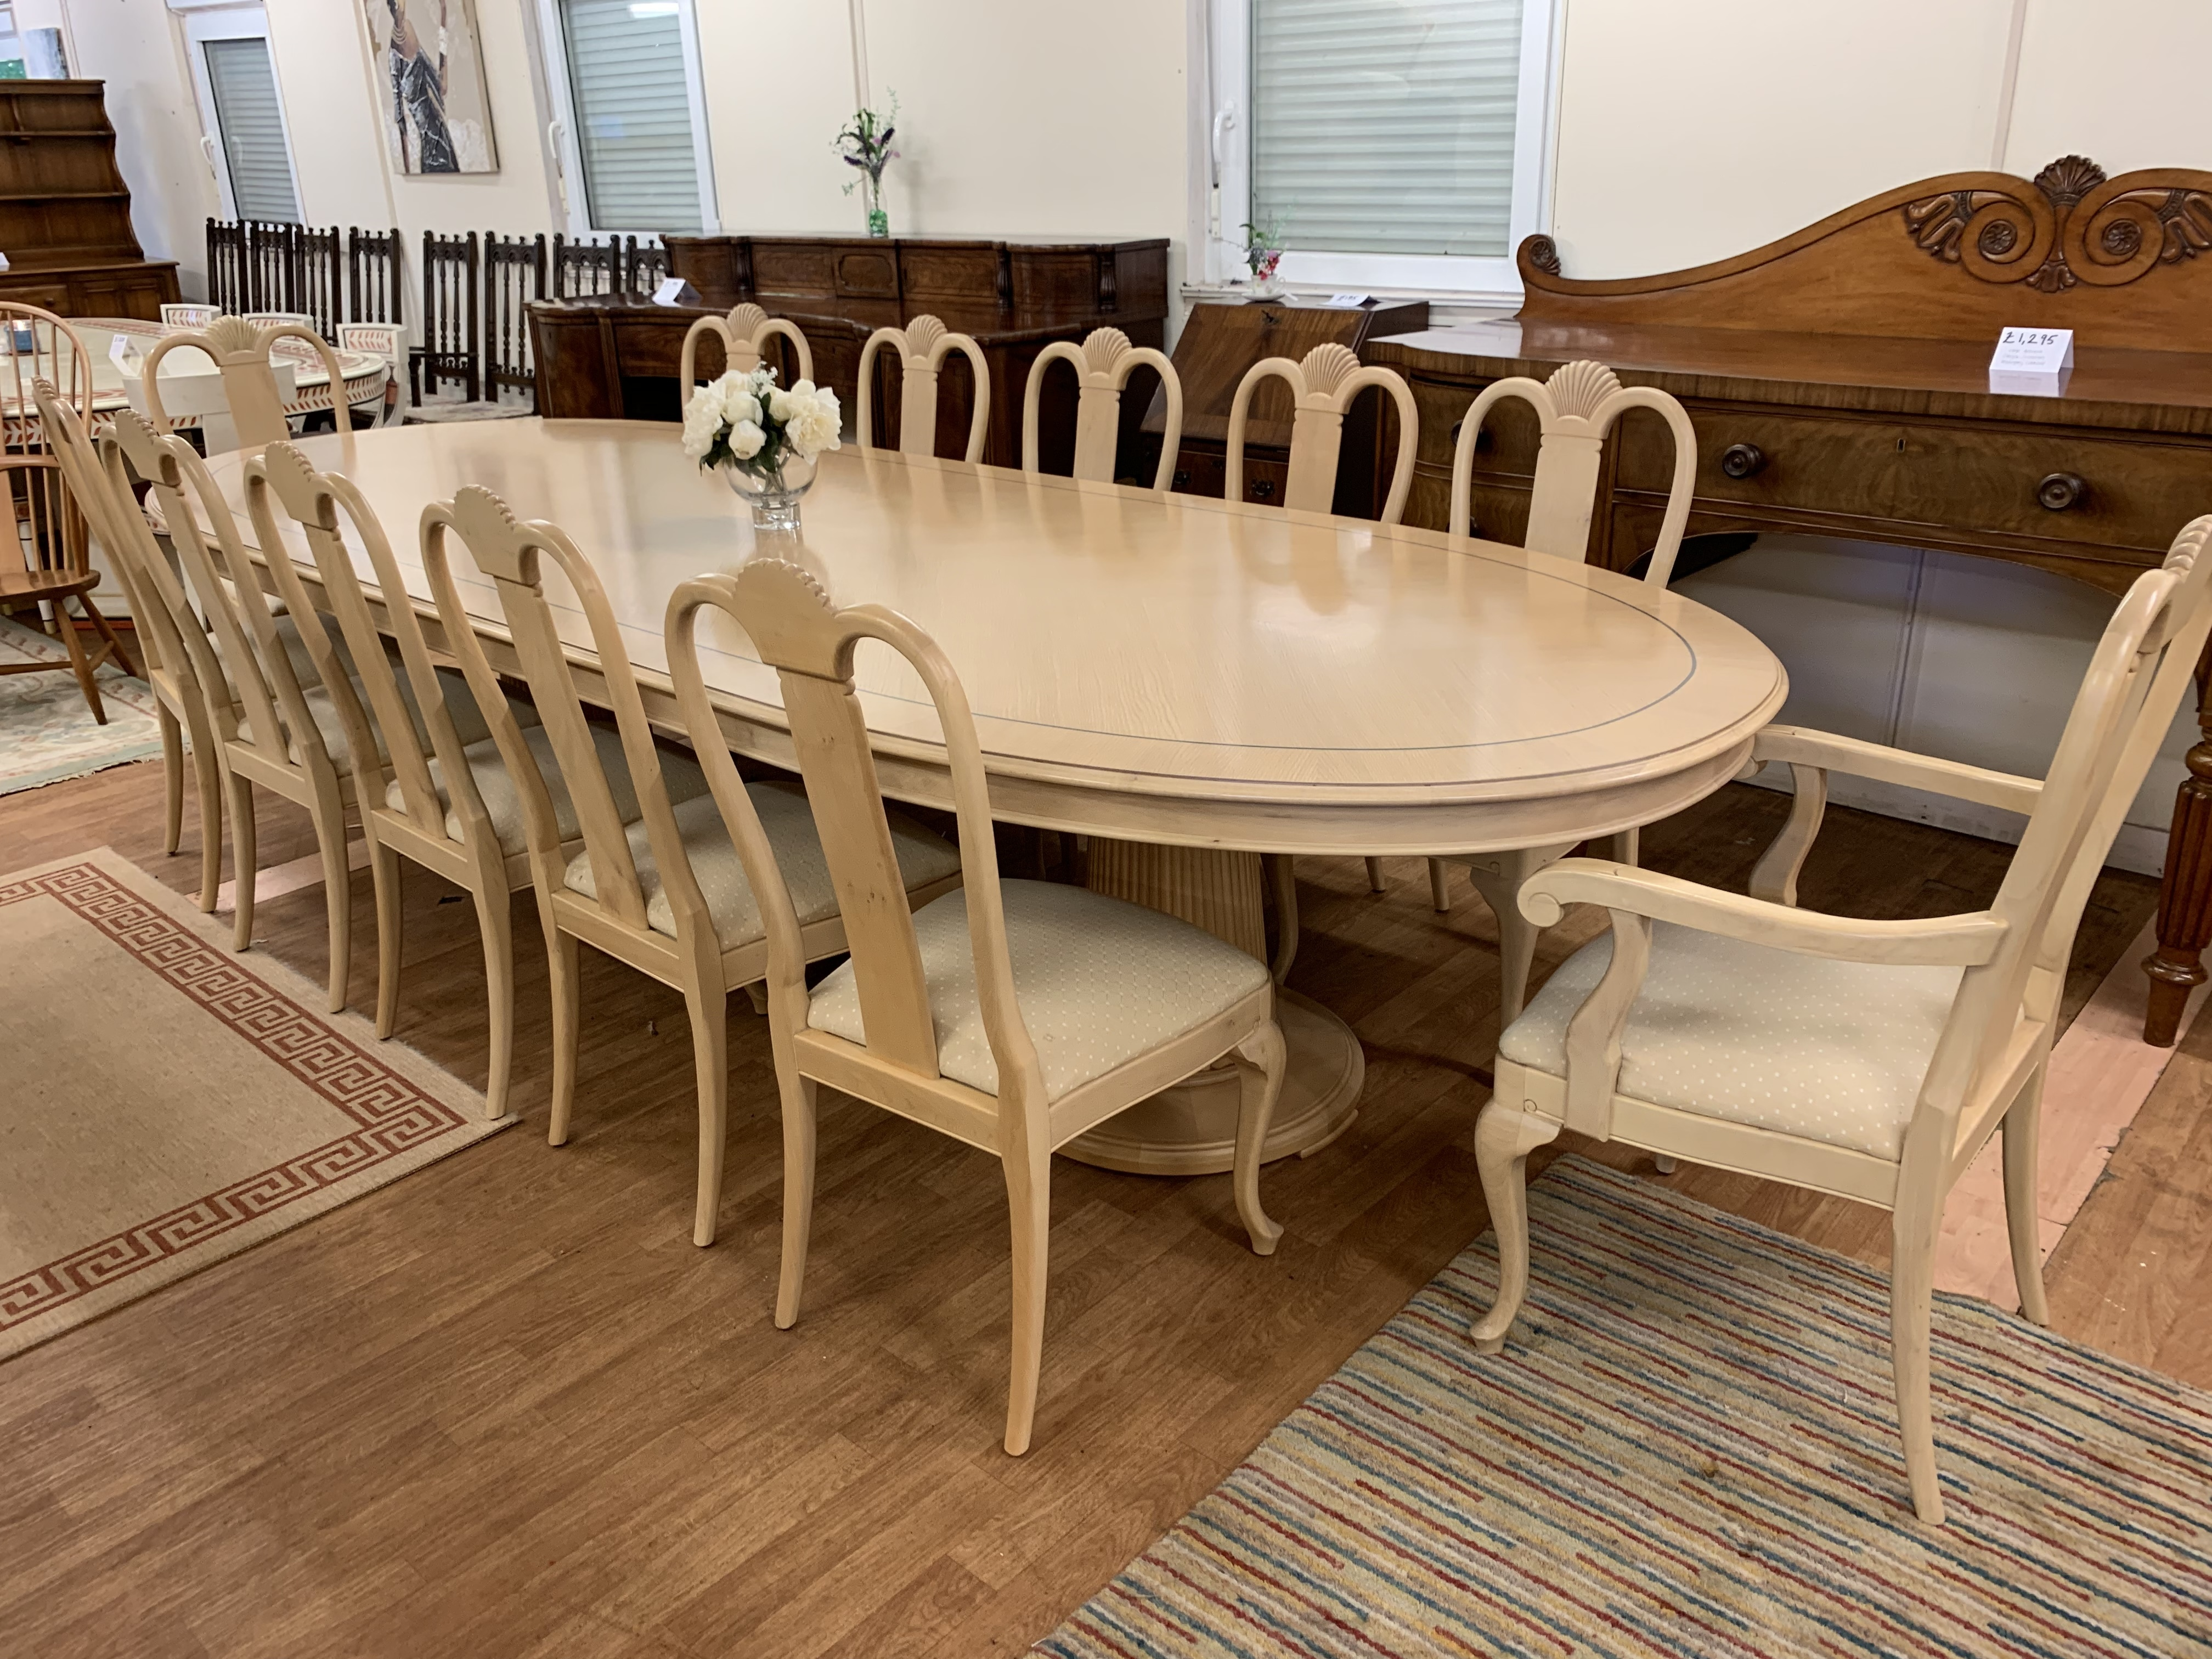 Incredible Large Dining Table 12 Chairs Light Wood Queen Anne Style Conference Table Download Free Architecture Designs Scobabritishbridgeorg